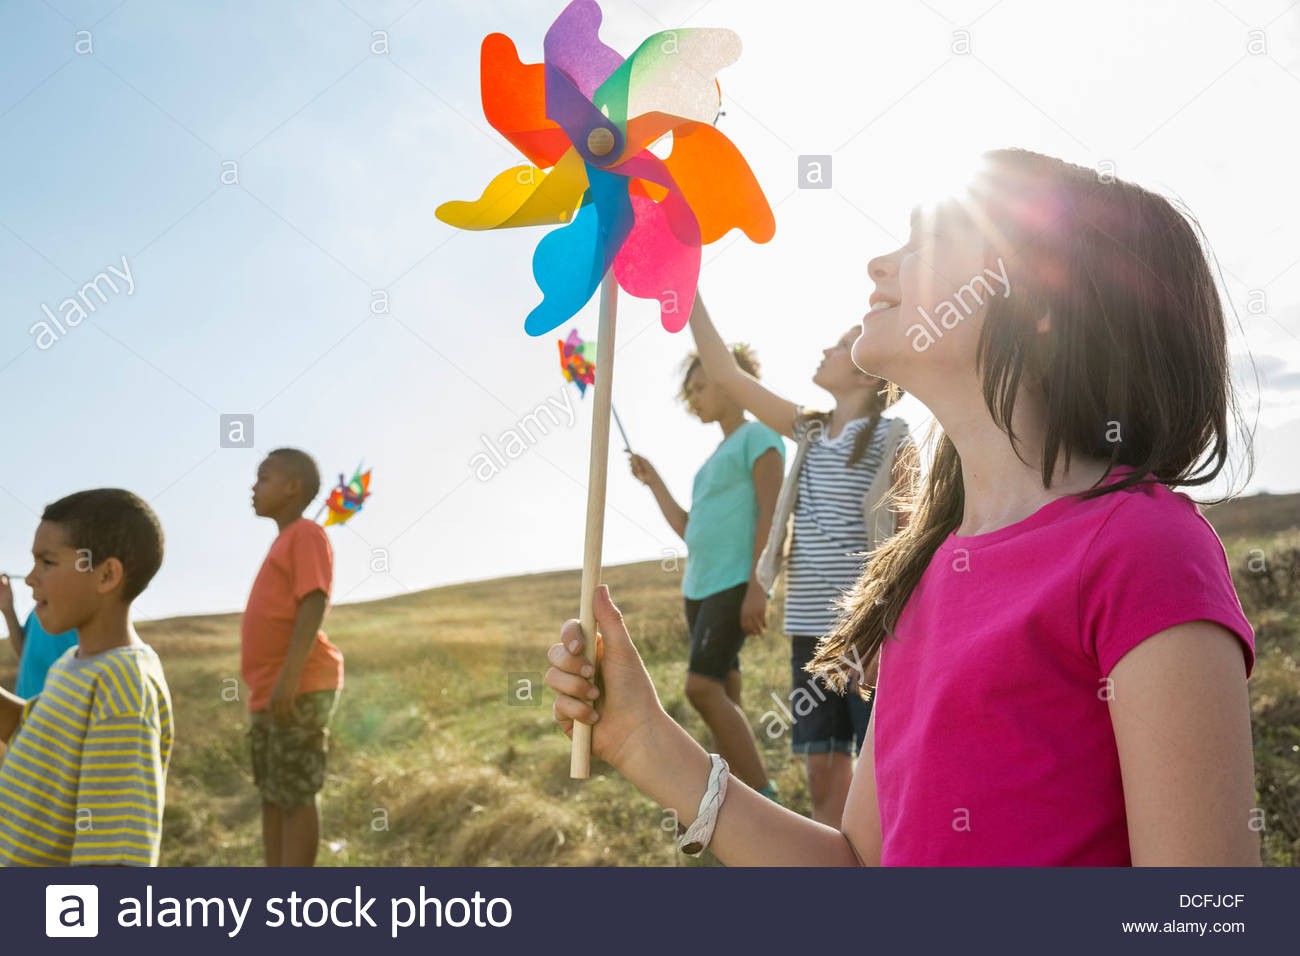 Schoolchildren holding pinwheels up outdoors - Stock Image